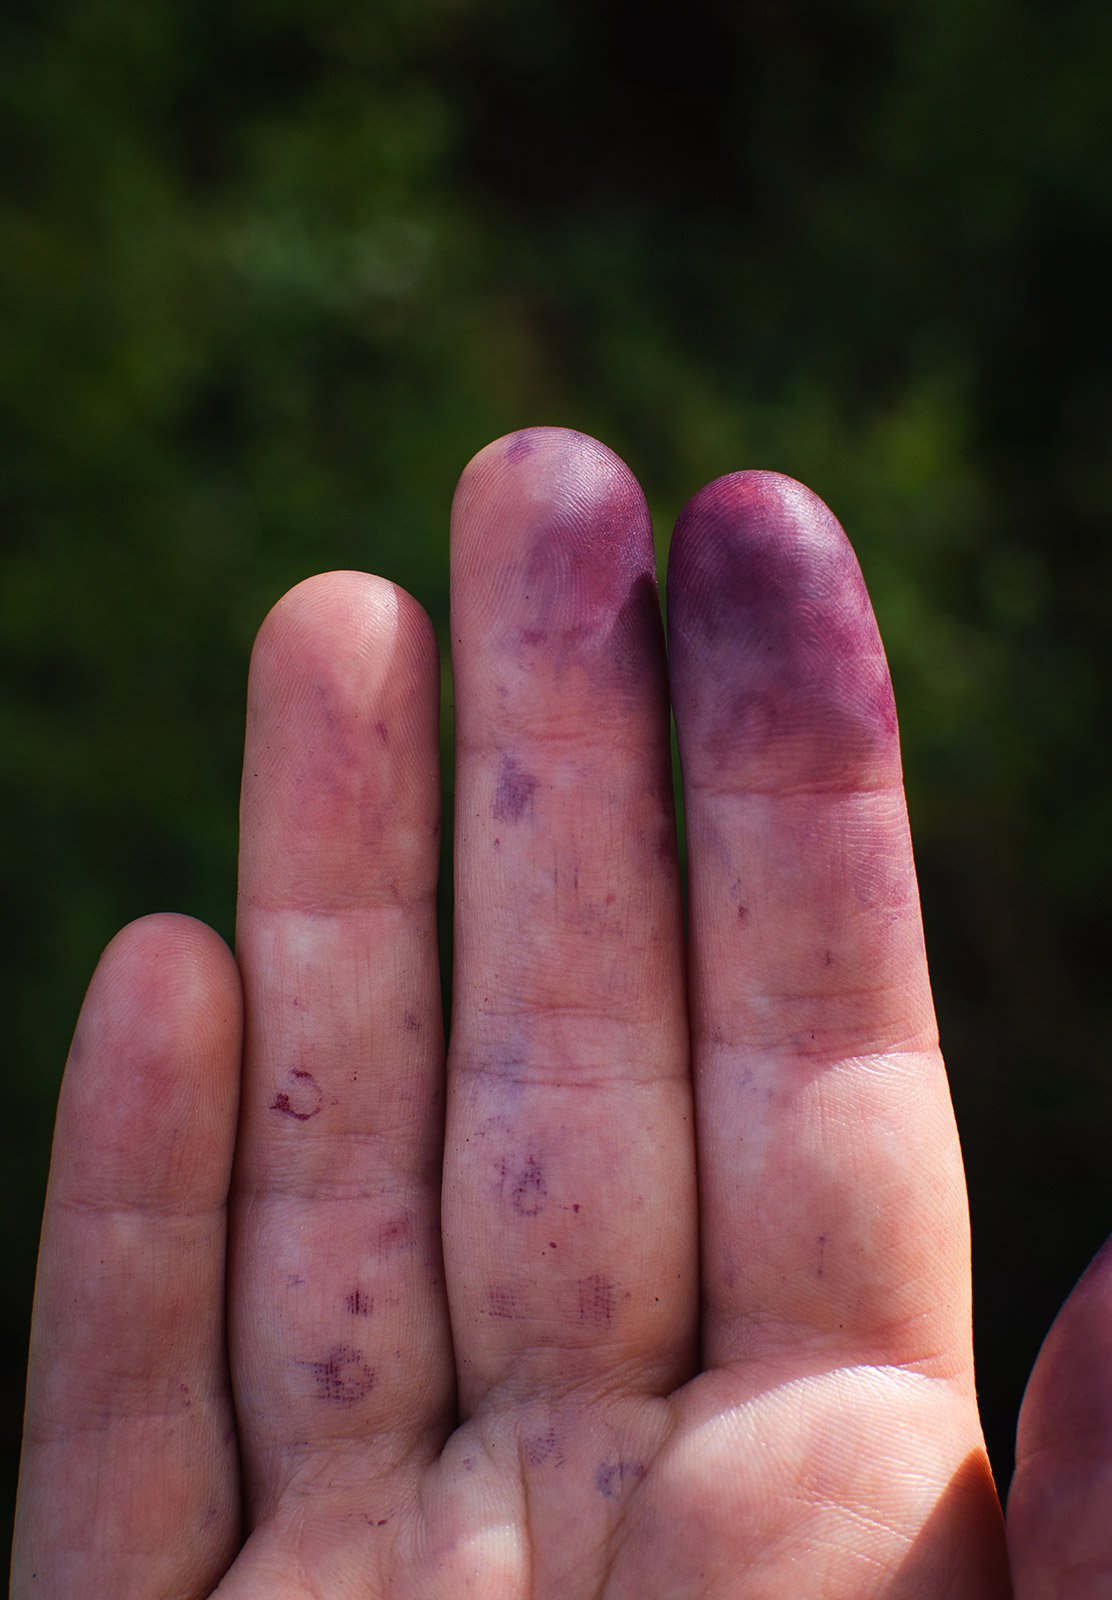 Purple stains on fingers